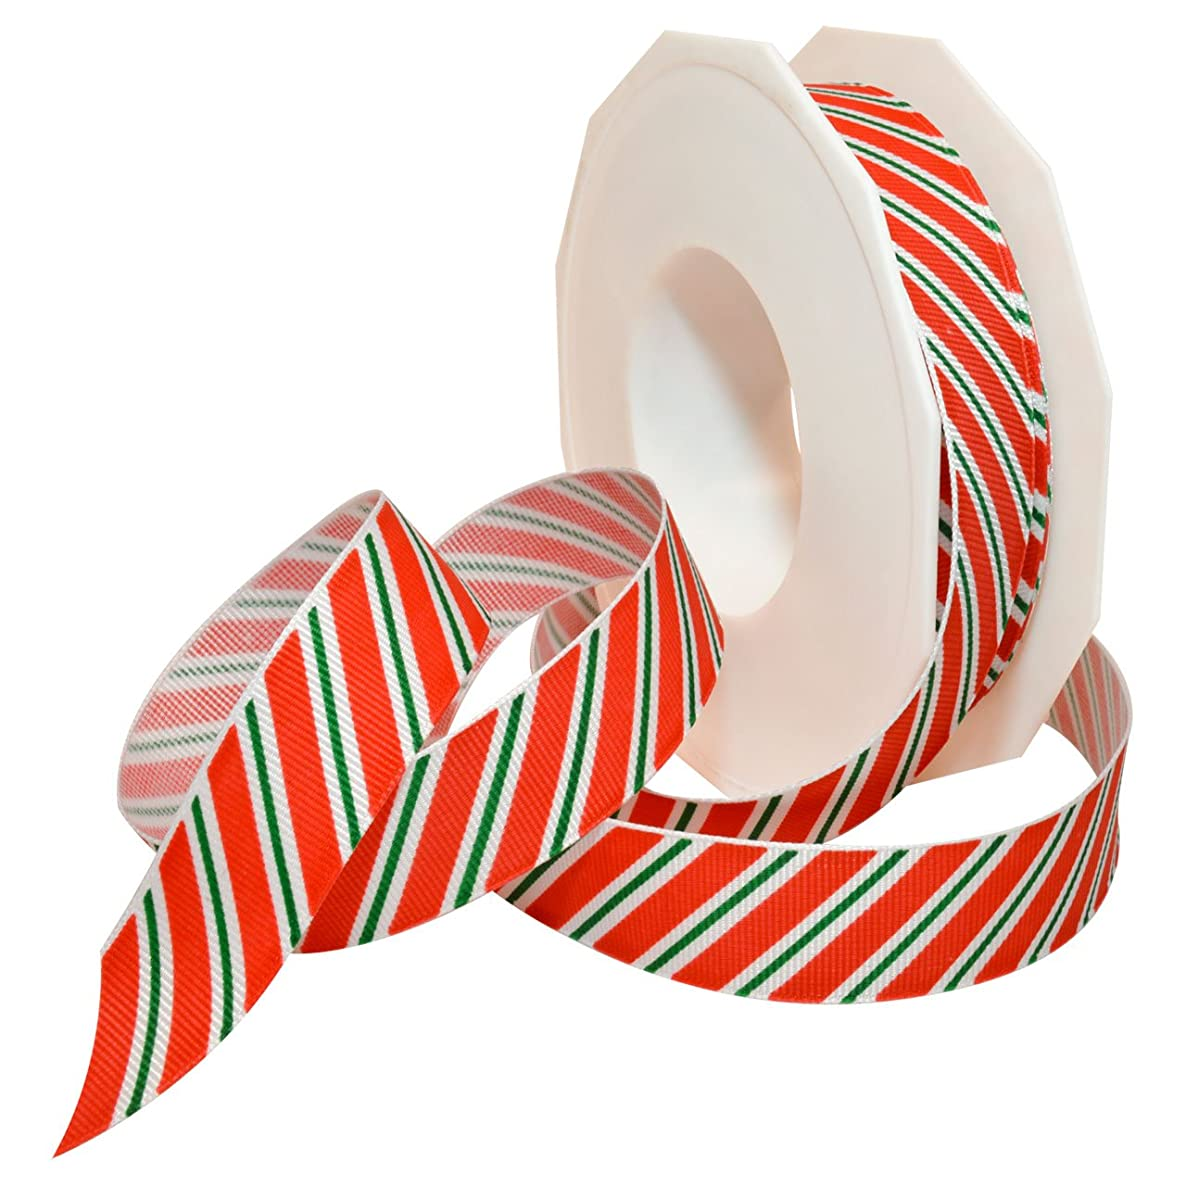 Morex Ribbon 80605/20-919 Candy Cane Stripes Grosgrain Ribbon, 7/8-Inch by 20-Yard, Holiday Red